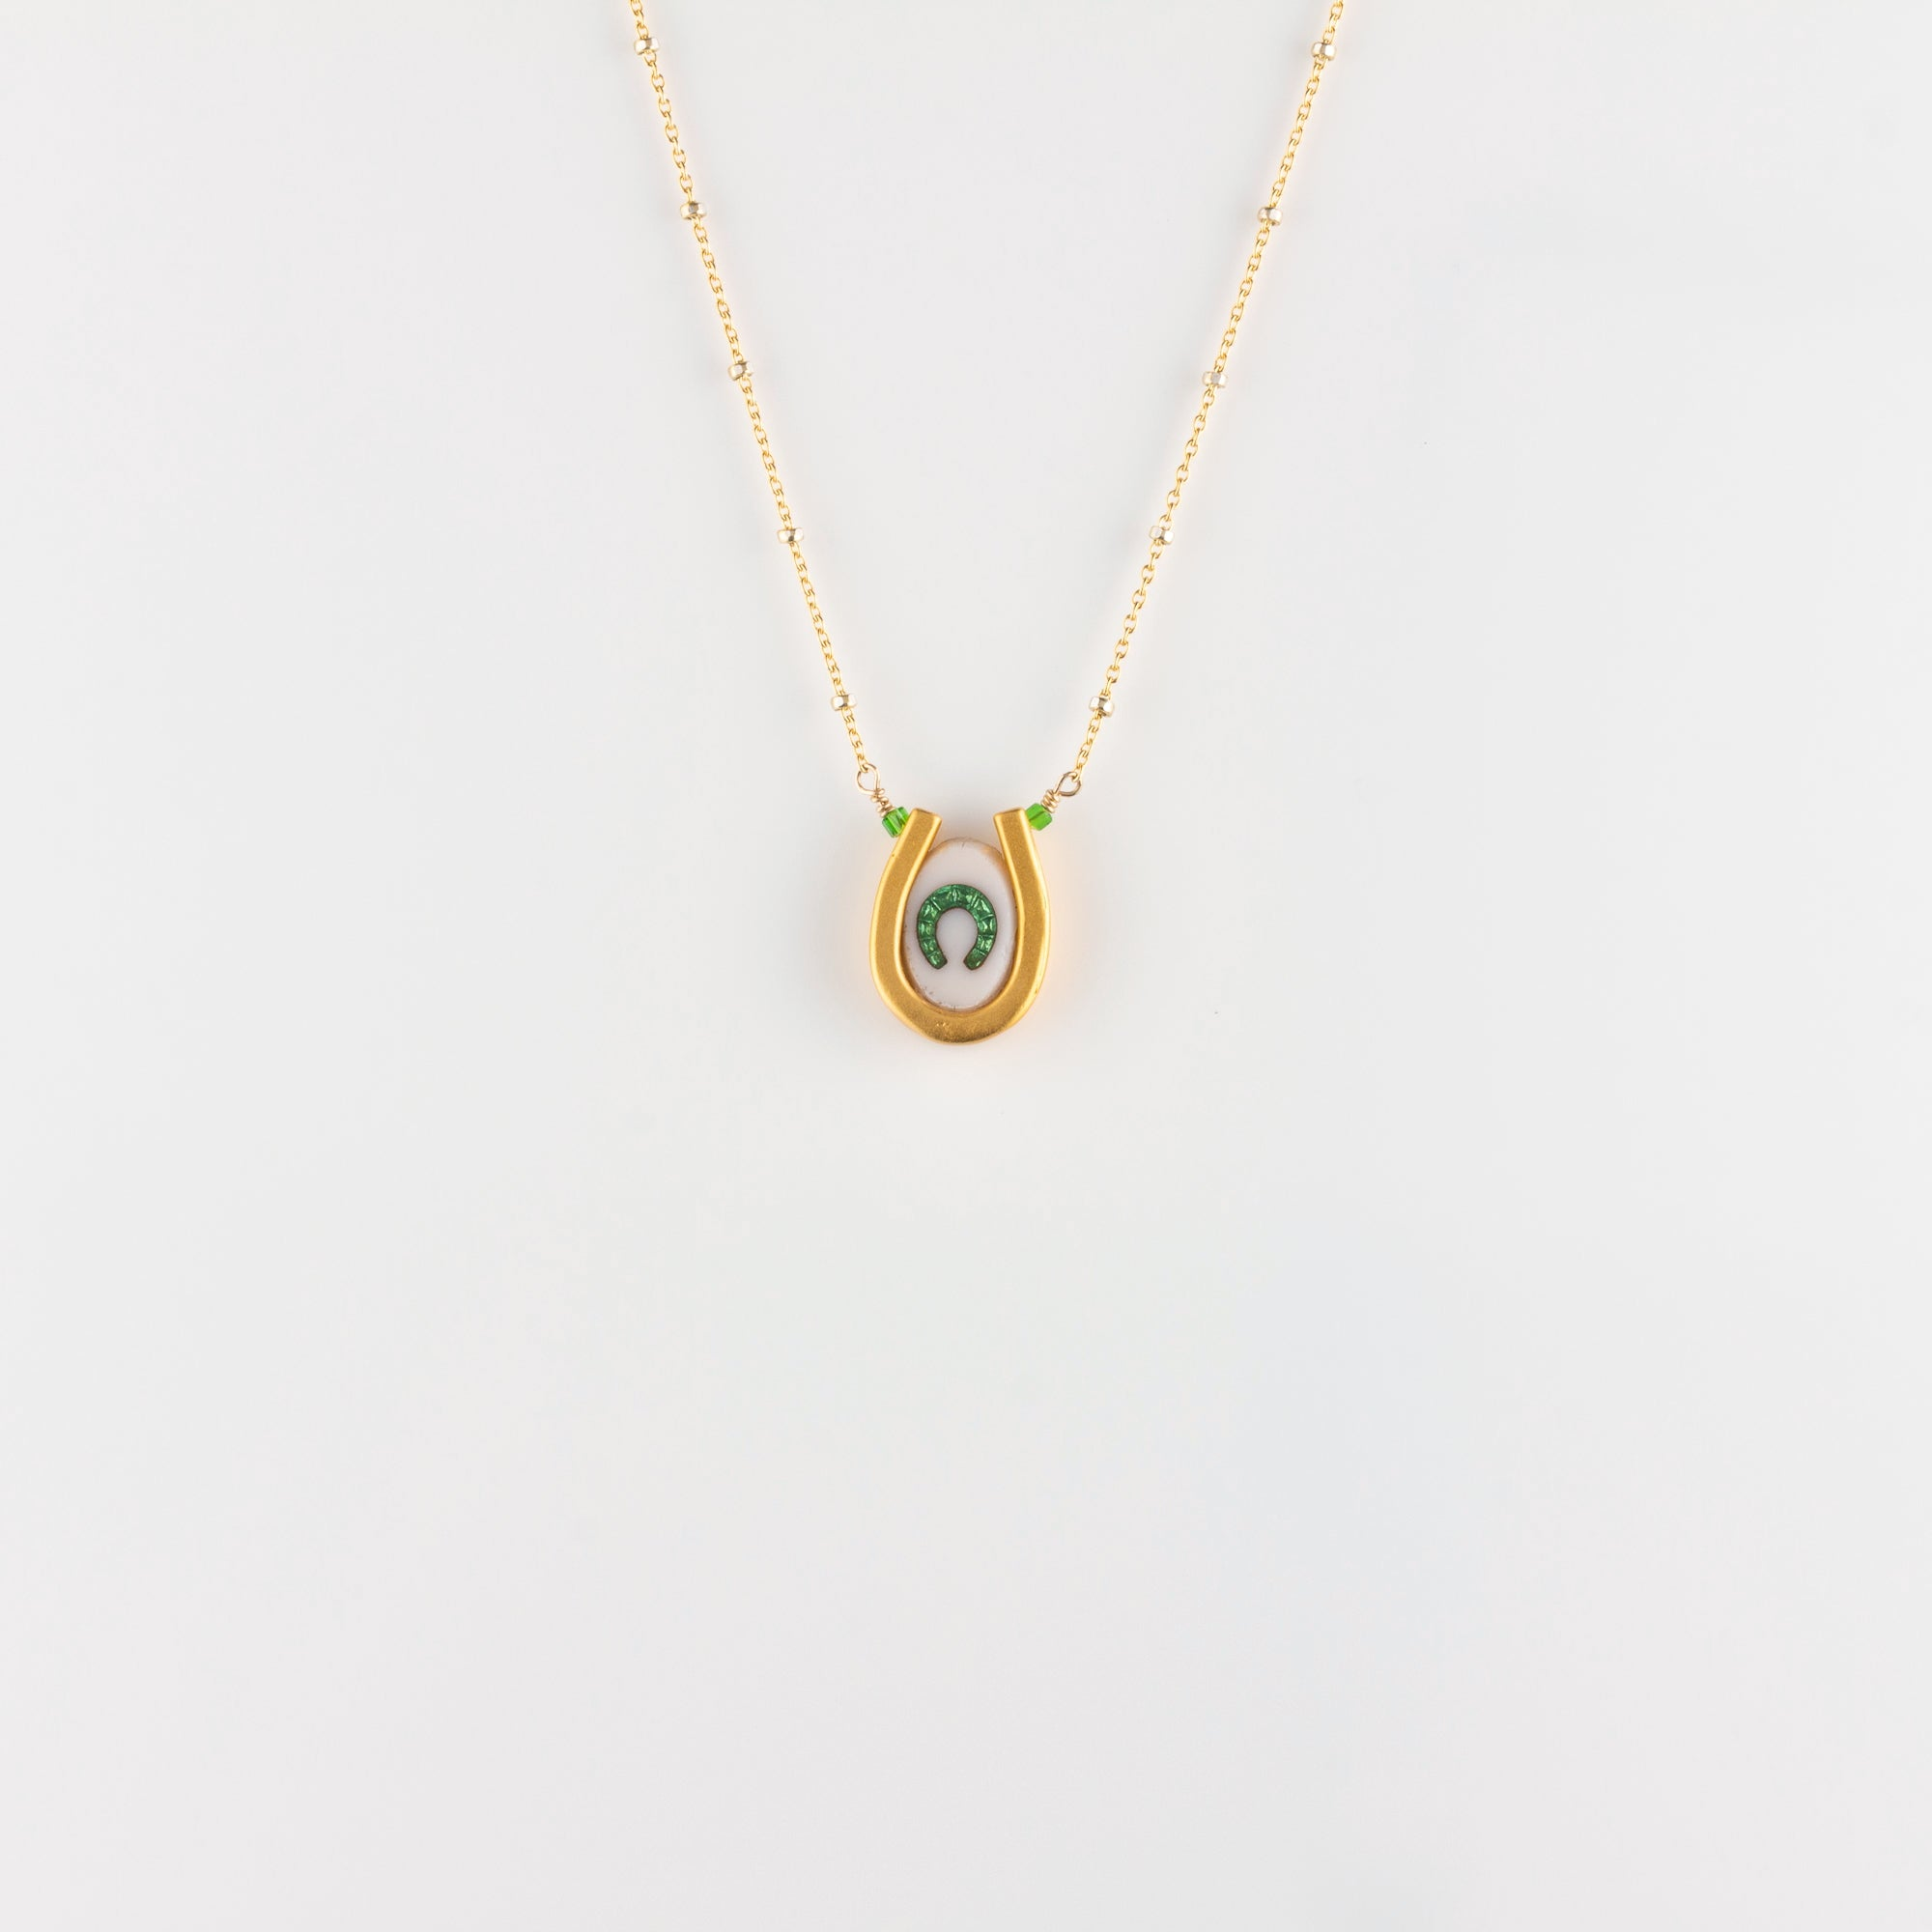 DOUBLE LUCK // VERMEIL NECKLACE // WHITE & GREEN